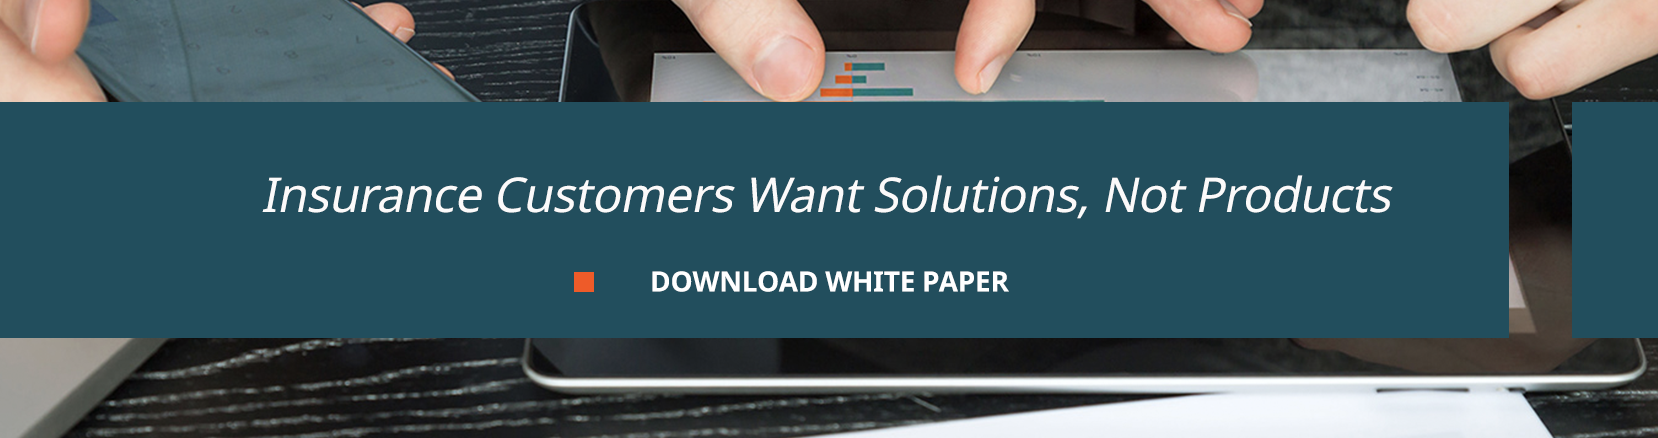 Insurance Customers Want Solutions, Not Products - White Paper by Stibo Systems